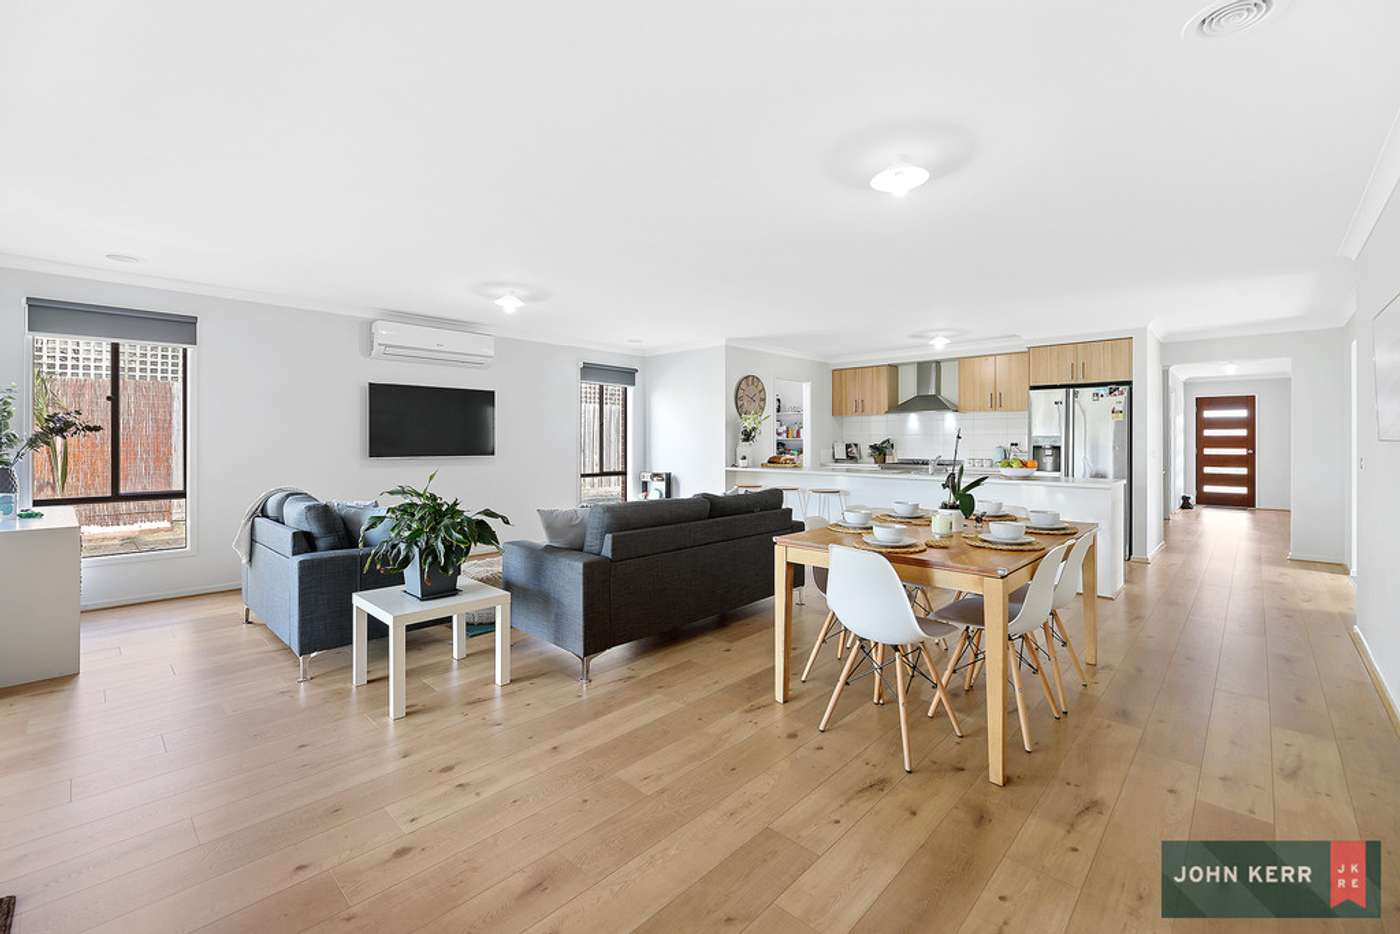 Sixth view of Homely house listing, 9 Catani Court, Newborough VIC 3825